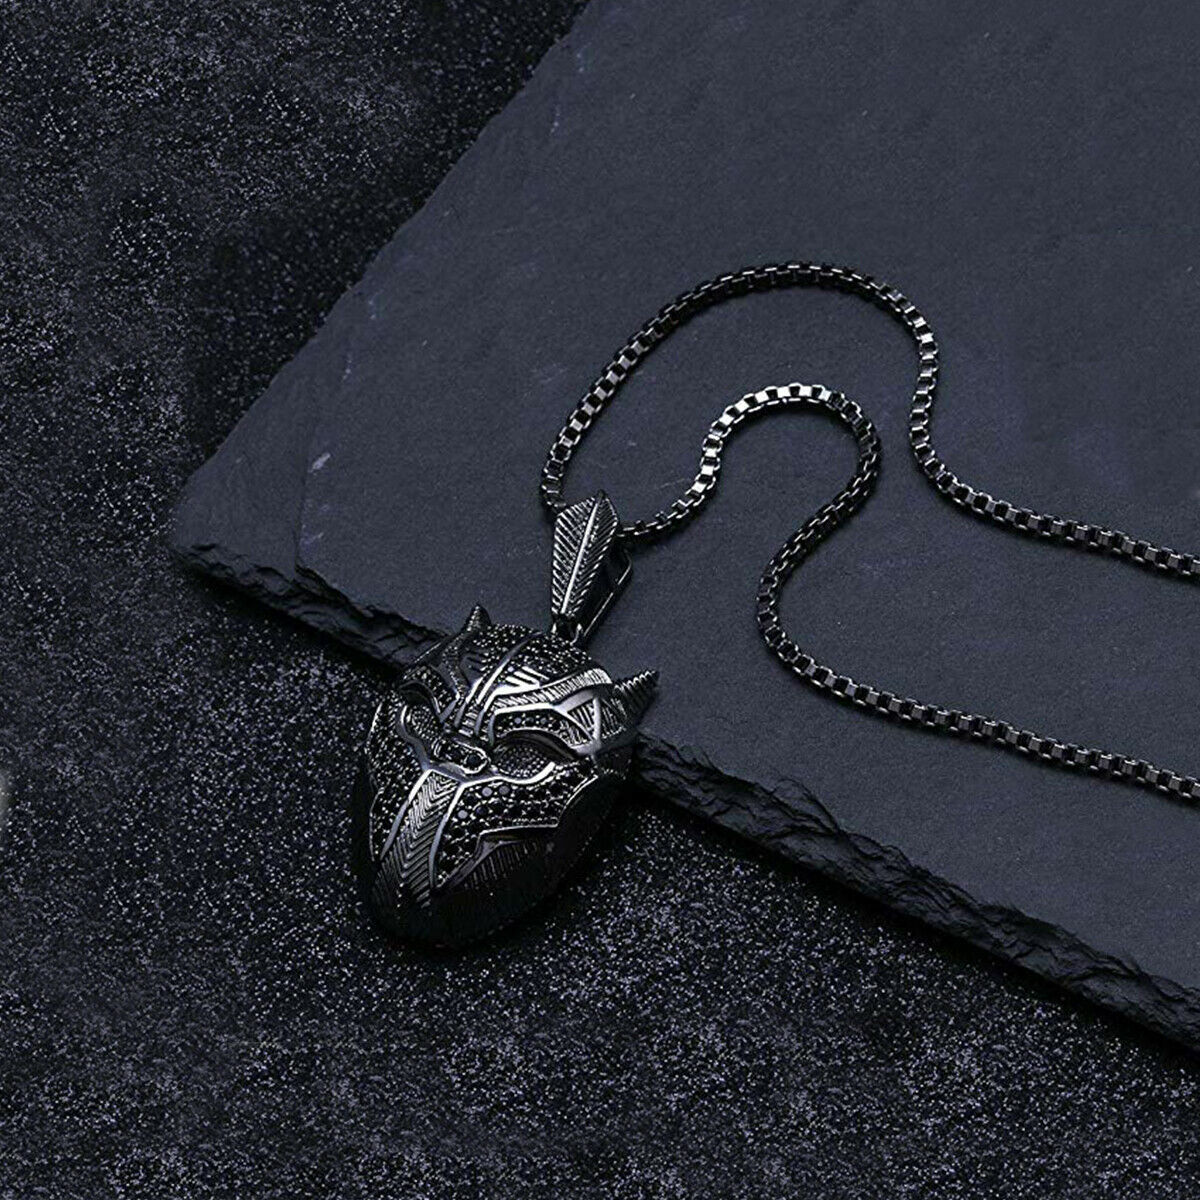 Punk HIP HOP Fashion Mens Skull Head Chain Pendant Necklace Halloween Gift image 4